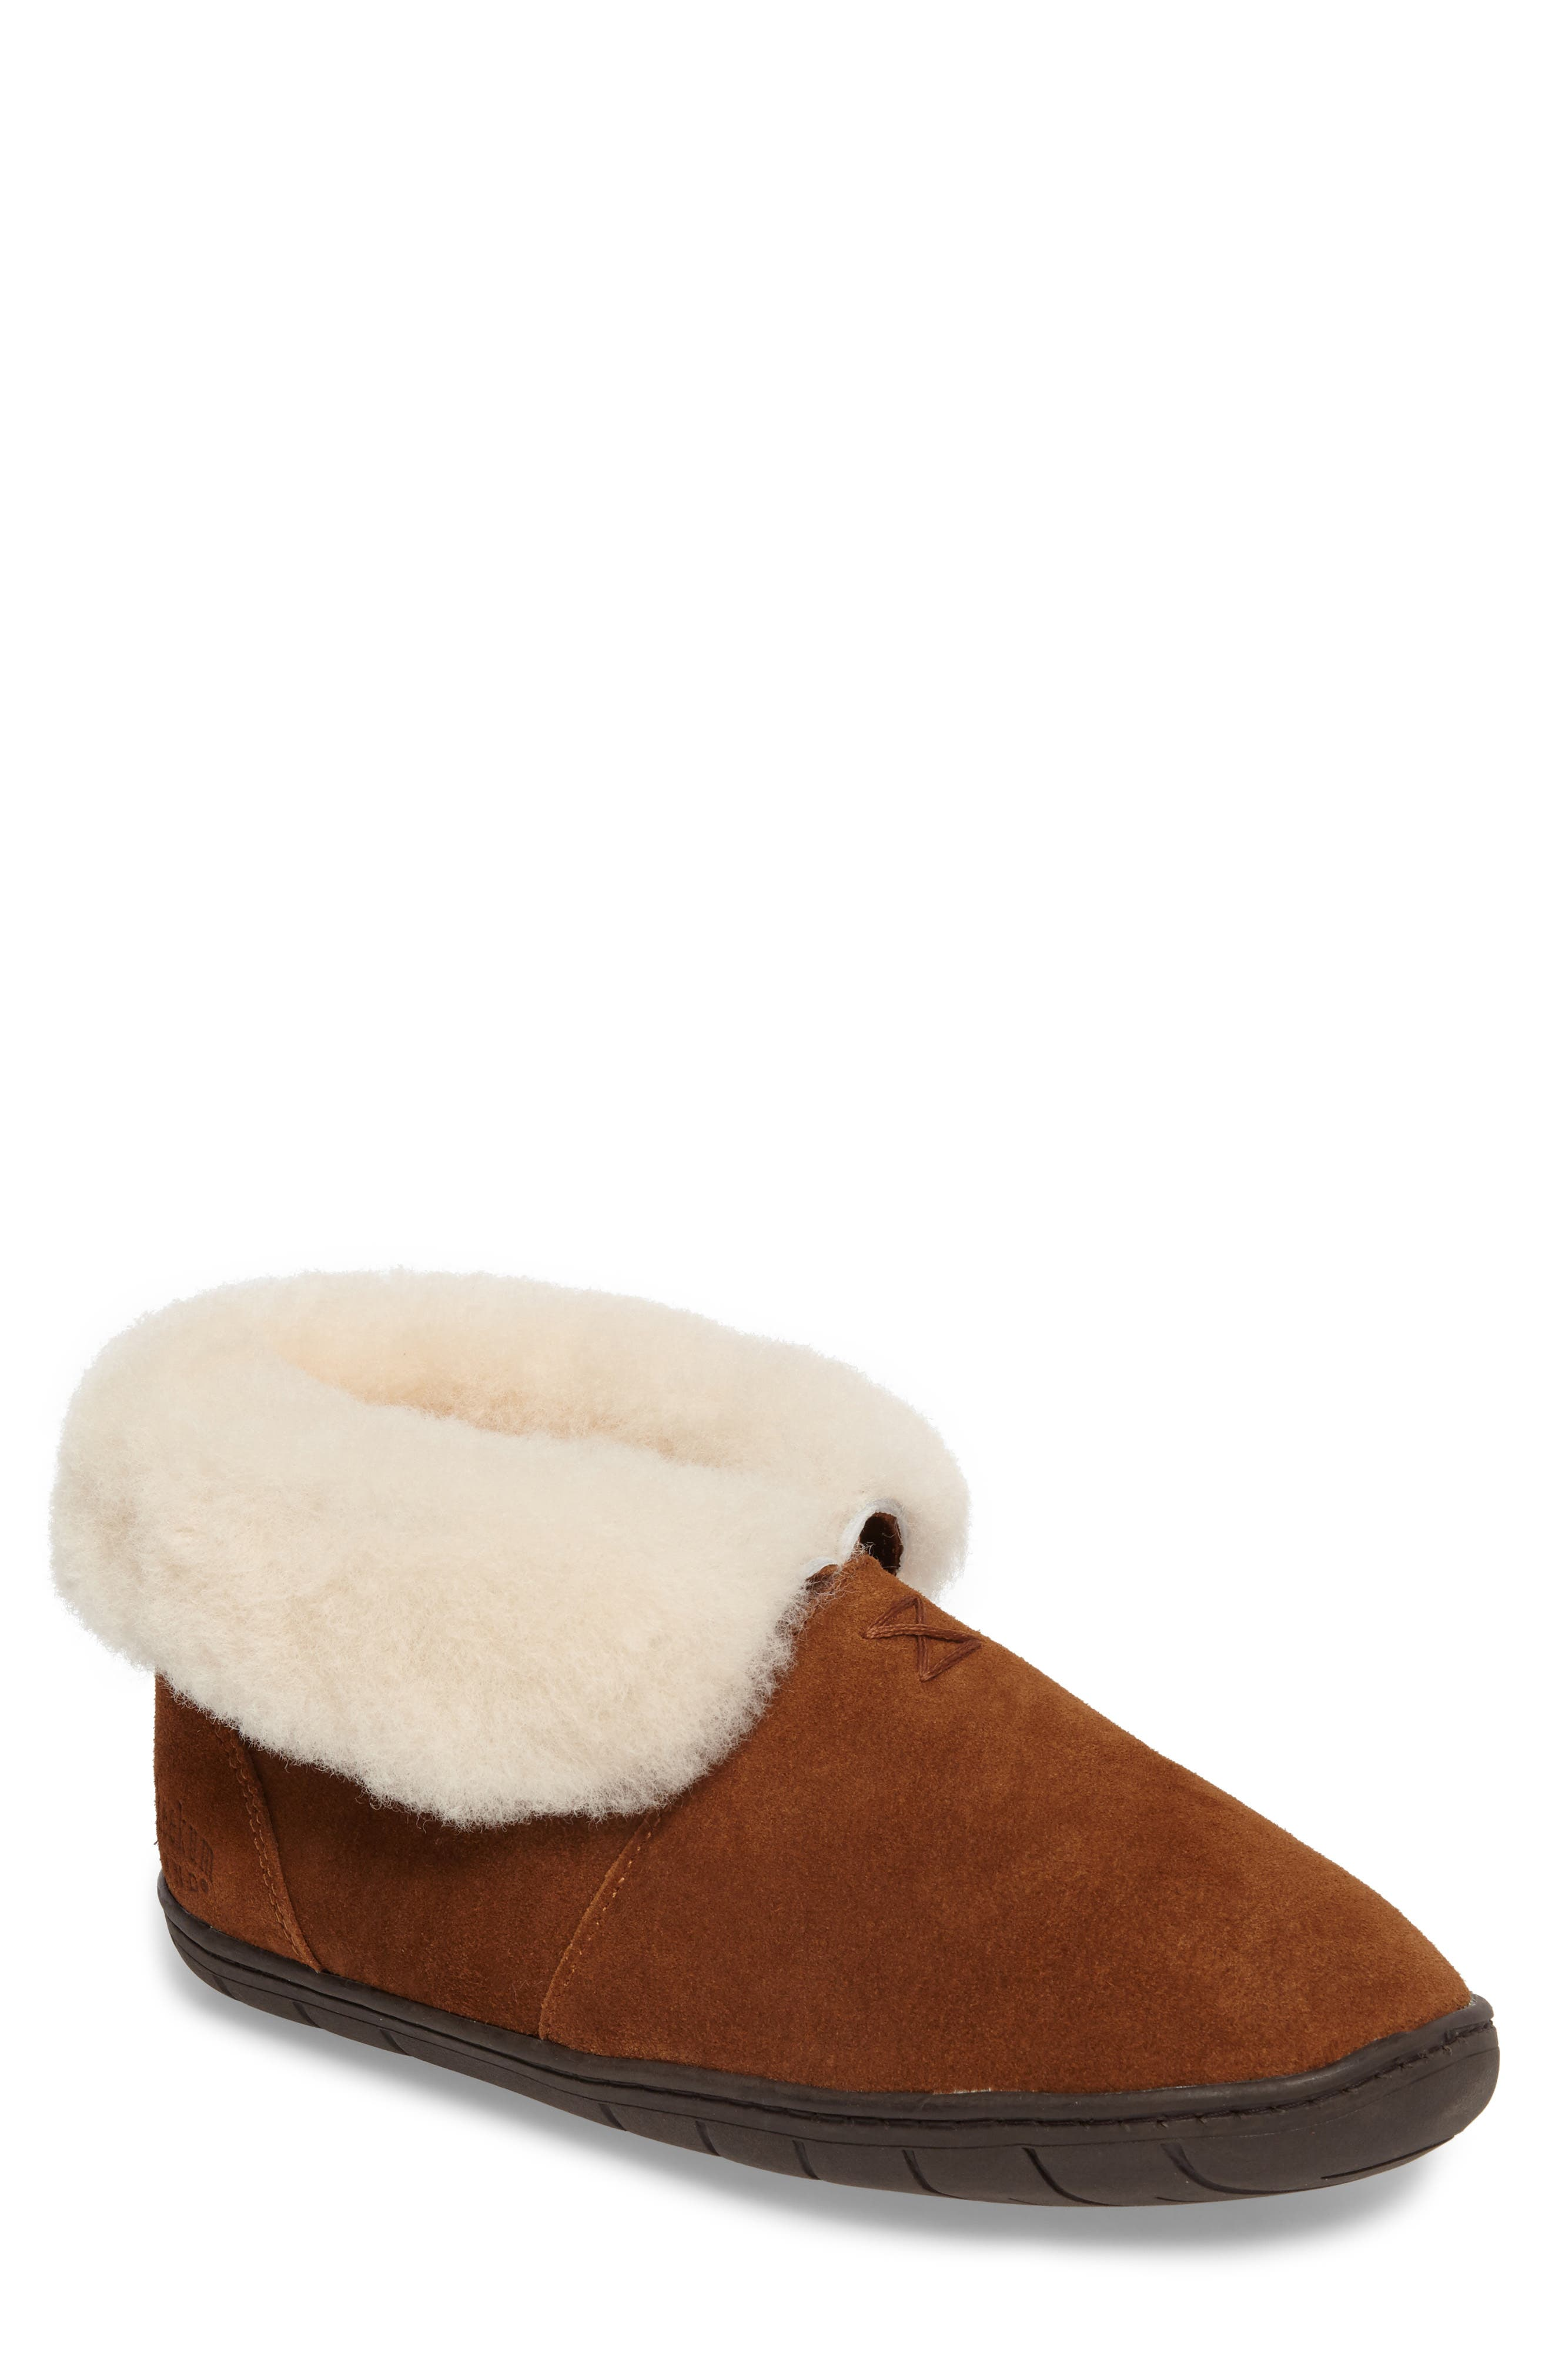 Tundra Slipper Bootie with Genuine Shearling Lining,                         Main,                         color, 212